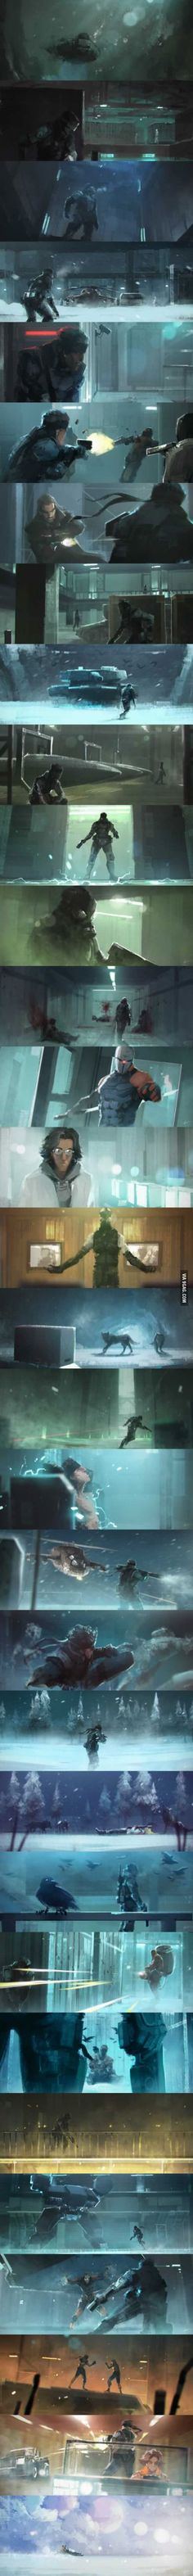 Metal Gear Solid. An Amazing Story Told With Amazing Art-** very awesome for an aw e some game